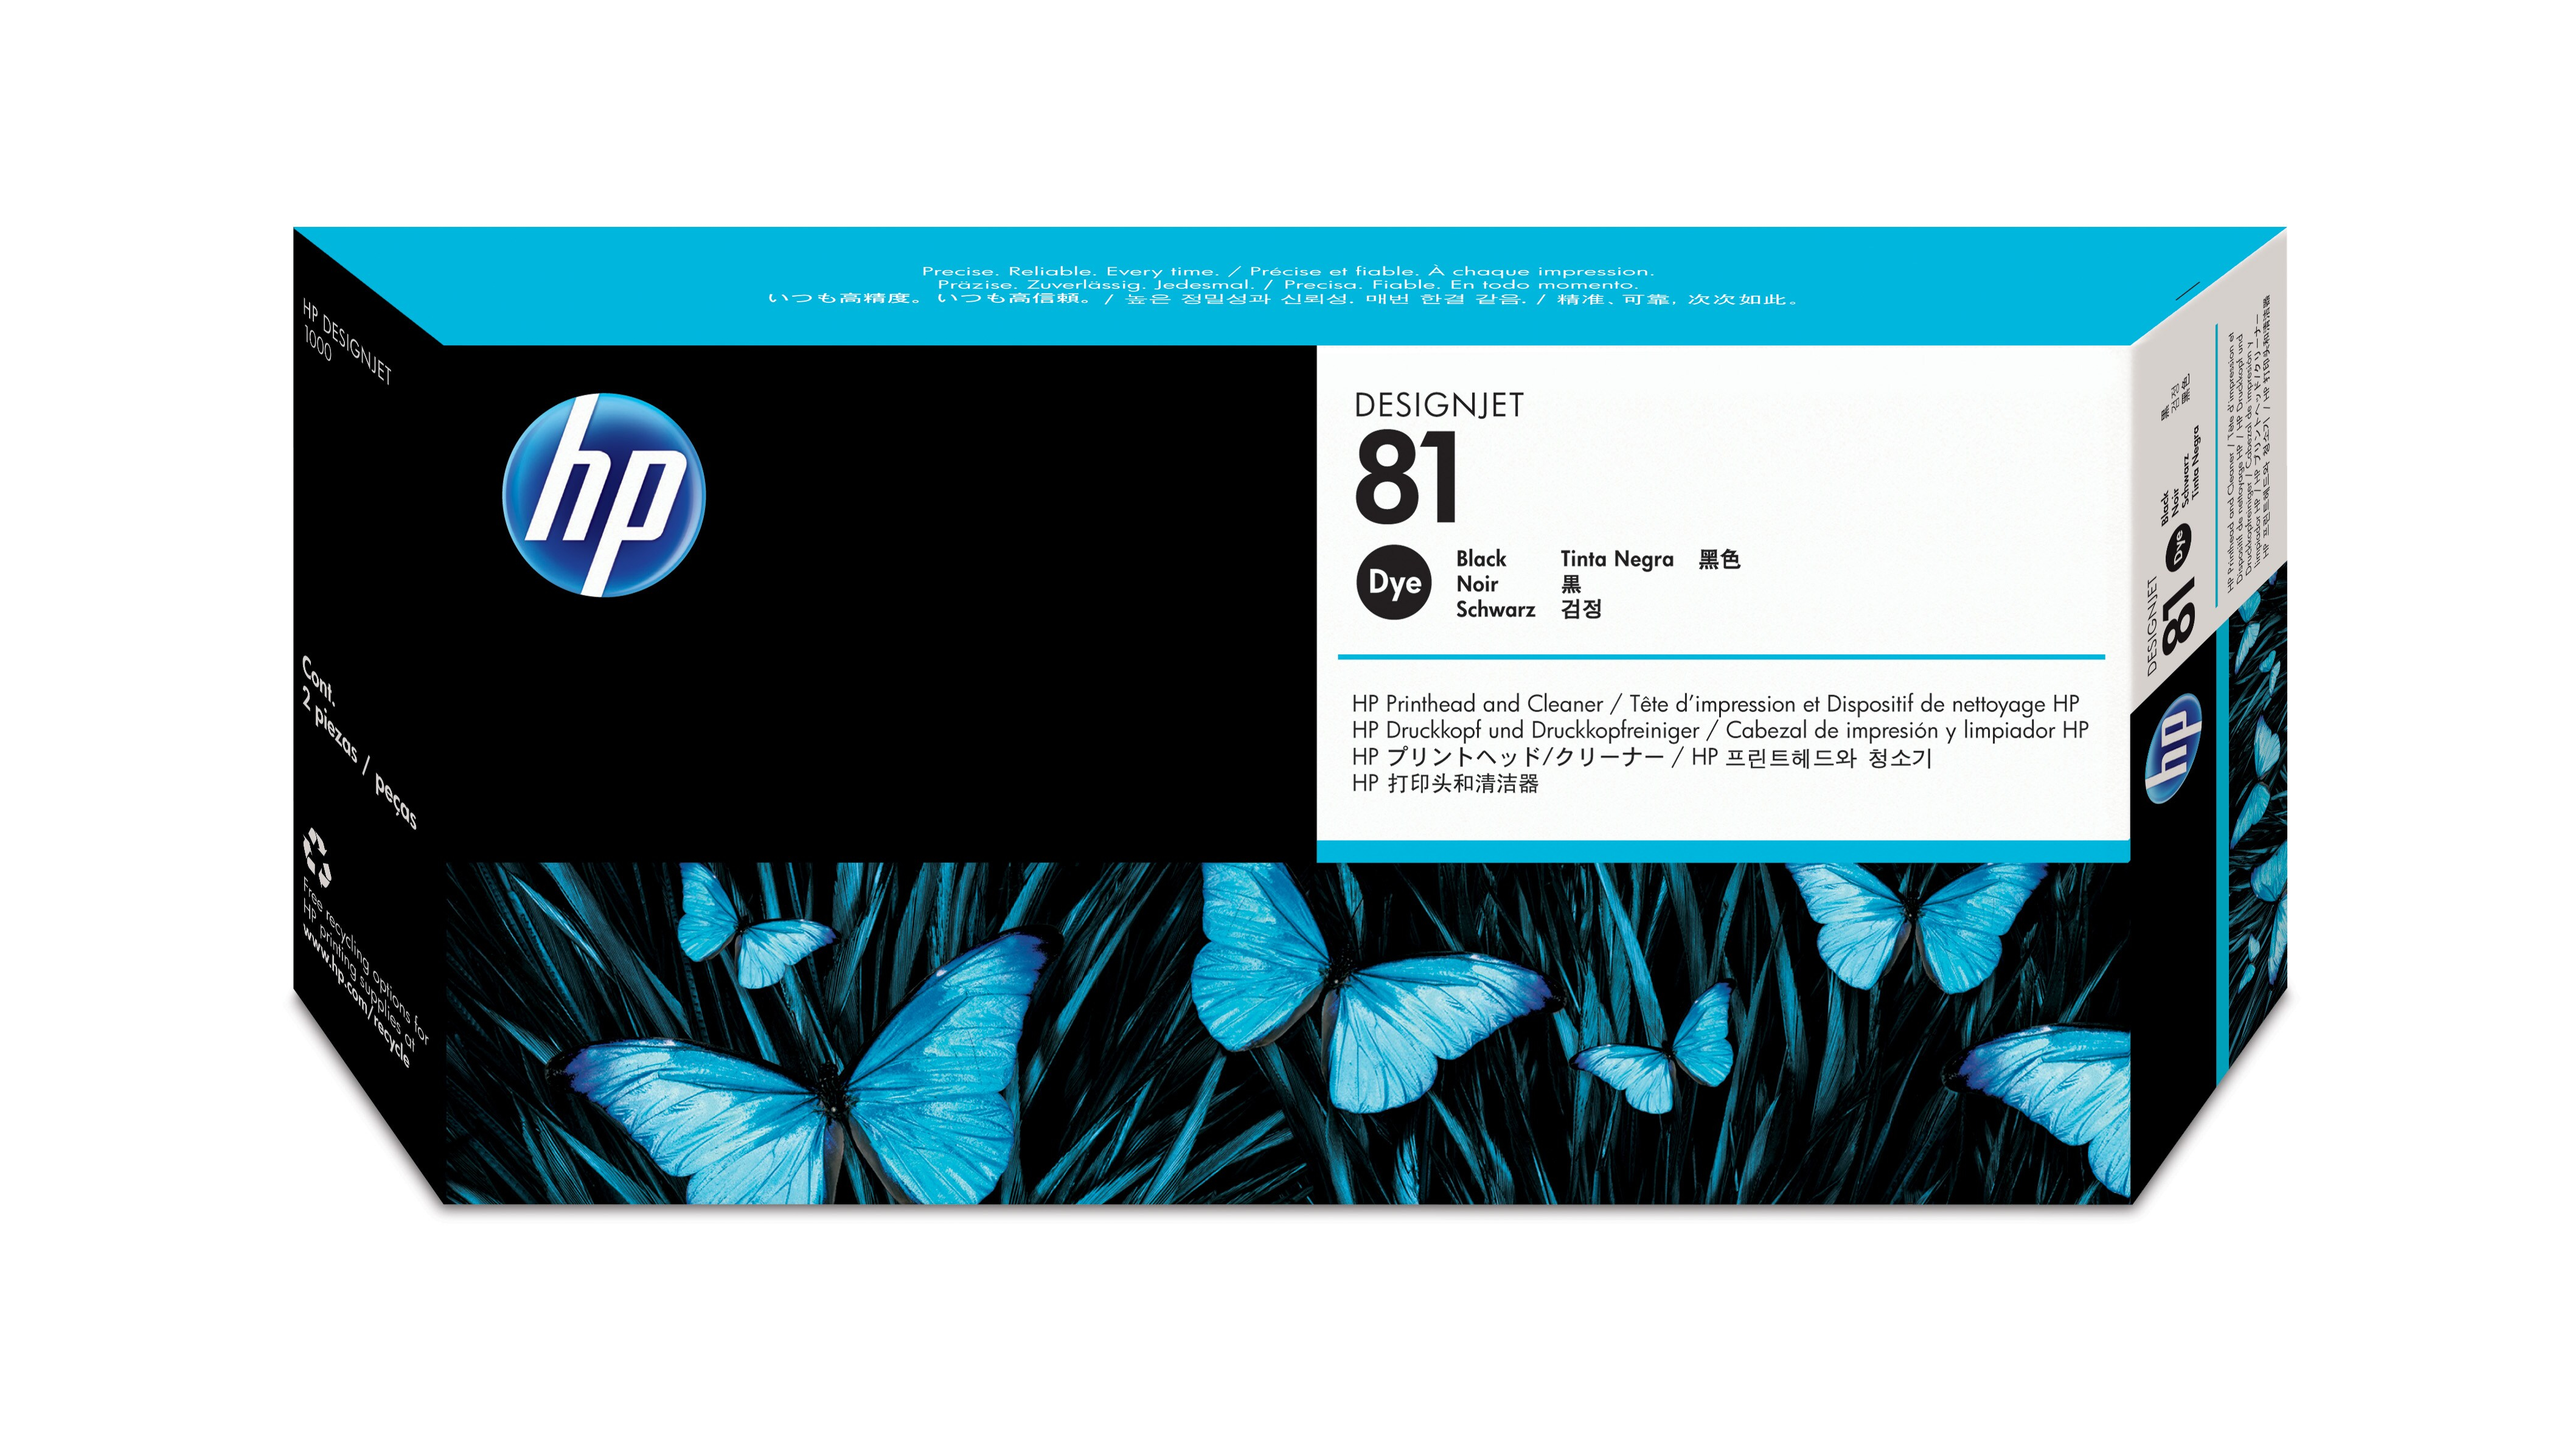 HP No. 81 Dye Ink Printhead And Cleaner - Black  C4950a